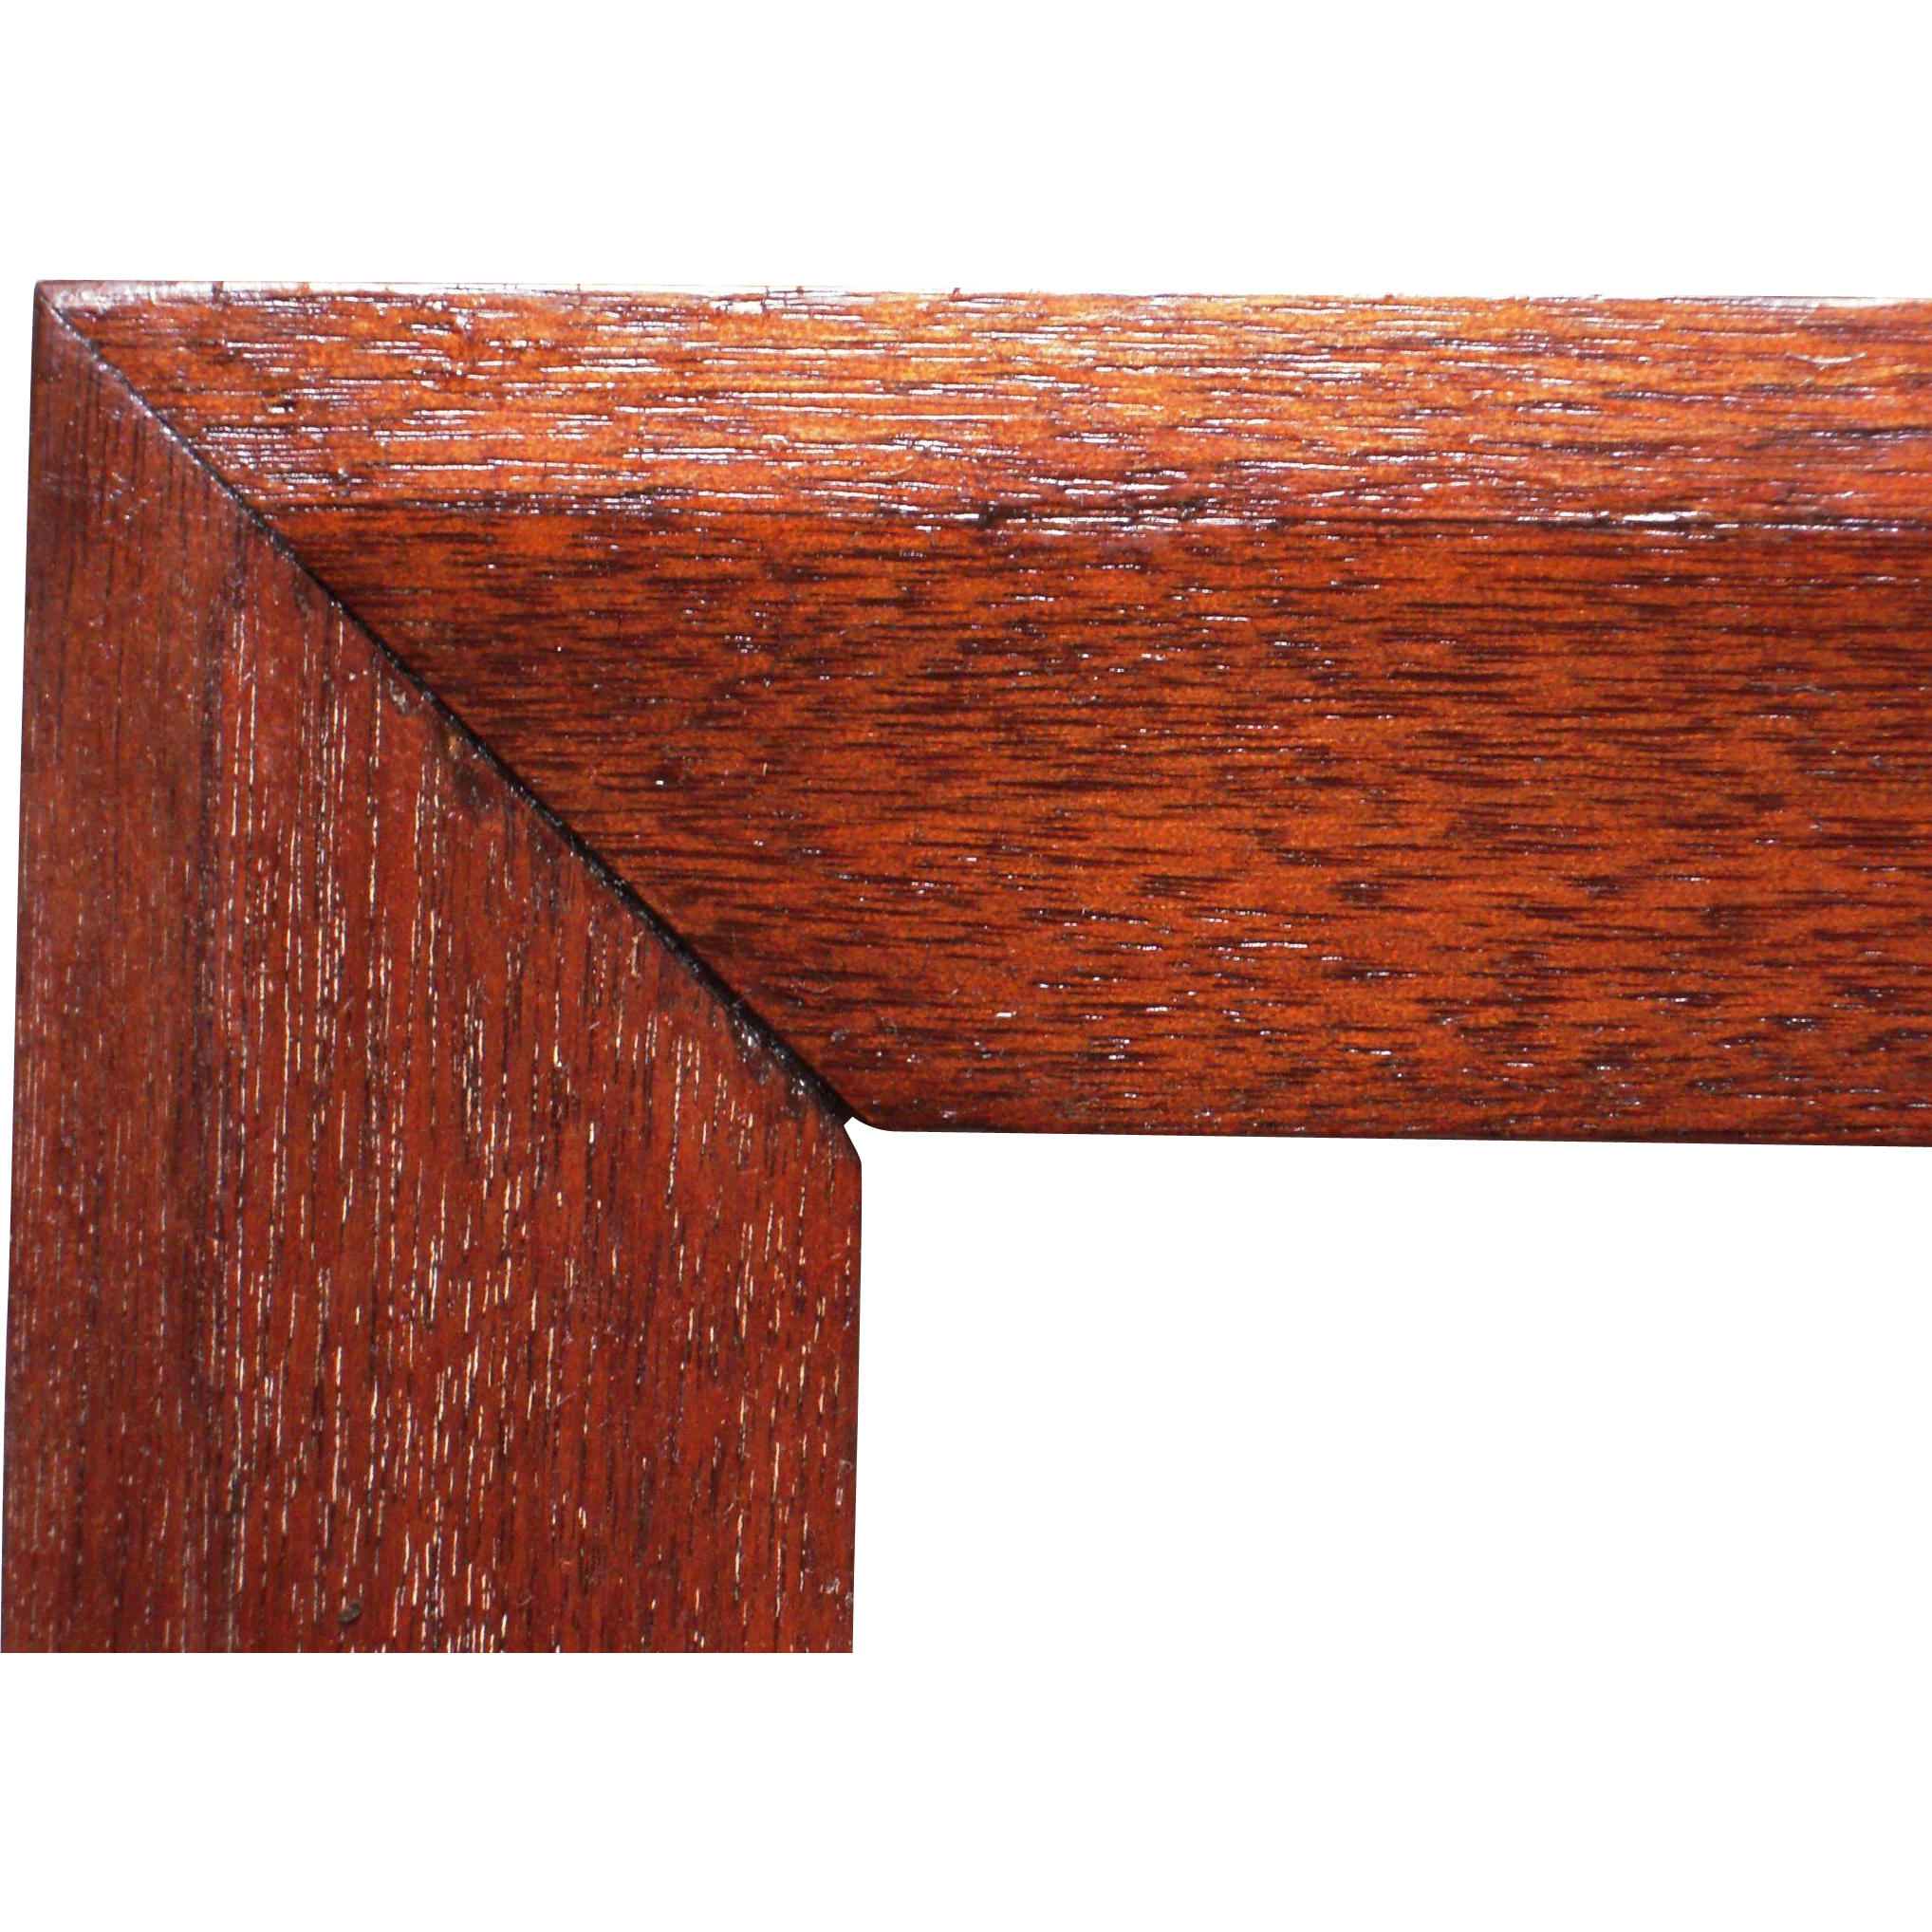 mid 1800s solid walnut ogee picture frame 10 x 14 from bluesprucerugsandantiques on ruby lane. Black Bedroom Furniture Sets. Home Design Ideas